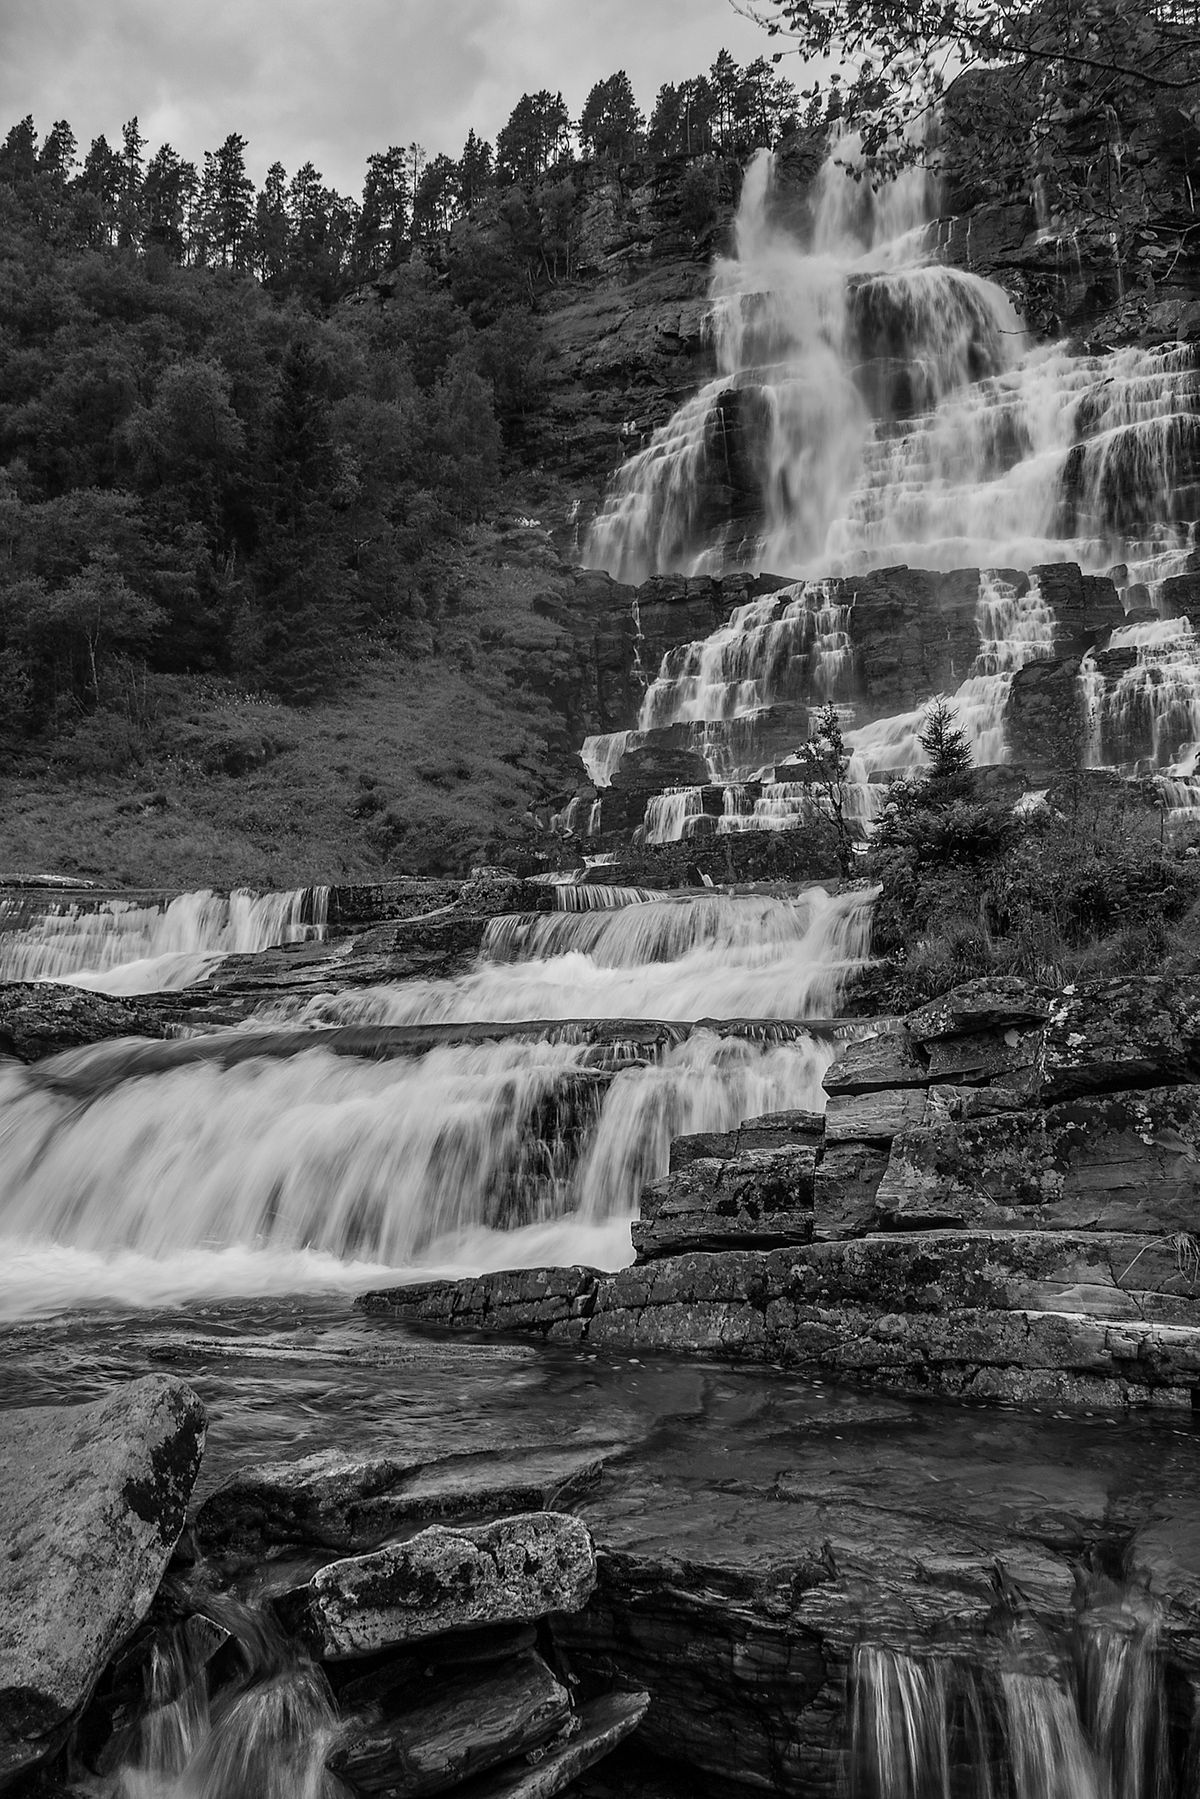 Wasserfall / water fall (Norwegen - Norway) b&w183